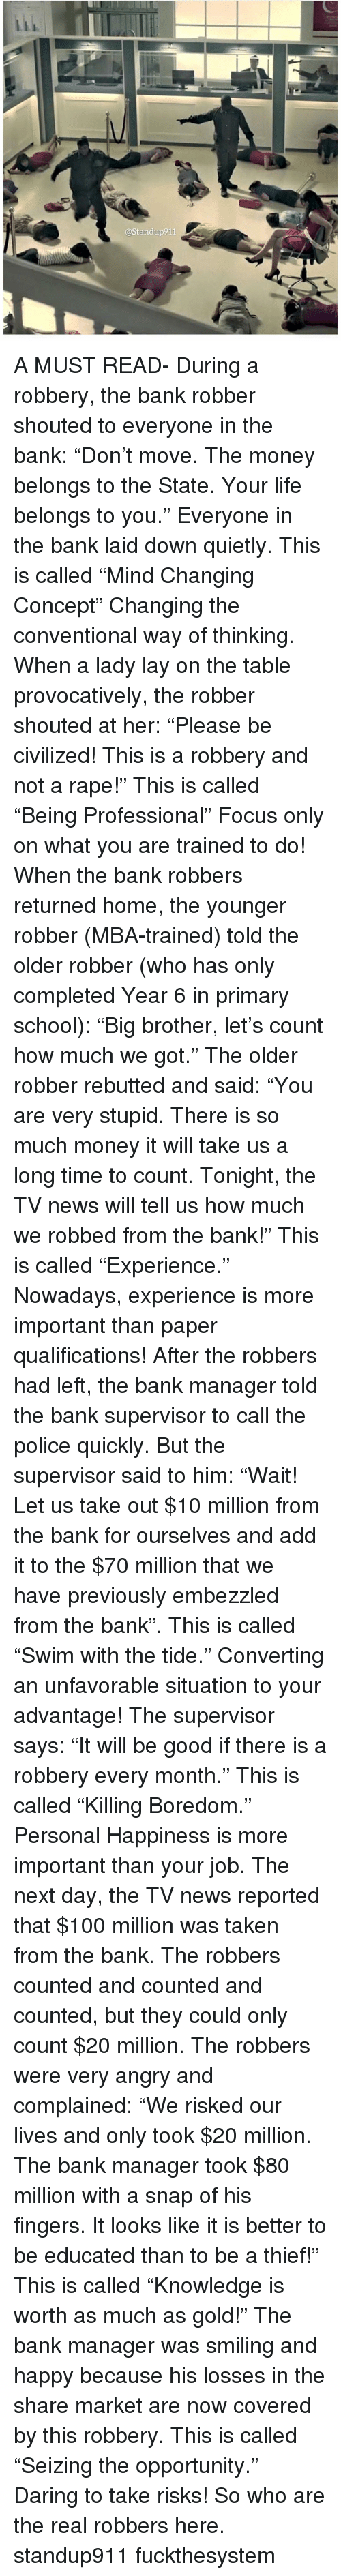 """Anaconda, Life, and Memes: @Standup911 A MUST READ- During a robbery, the bank robber shouted to everyone in the bank: """"Don't move. The money belongs to the State. Your life belongs to you."""" Everyone in the bank laid down quietly. This is called """"Mind Changing Concept"""" Changing the conventional way of thinking. When a lady lay on the table provocatively, the robber shouted at her: """"Please be civilized! This is a robbery and not a rape!"""" This is called """"Being Professional"""" Focus only on what you are trained to do! When the bank robbers returned home, the younger robber (MBA-trained) told the older robber (who has only completed Year 6 in primary school): """"Big brother, let's count how much we got."""" The older robber rebutted and said: """"You are very stupid. There is so much money it will take us a long time to count. Tonight, the TV news will tell us how much we robbed from the bank!"""" This is called """"Experience."""" Nowadays, experience is more important than paper qualifications! After the robbers had left, the bank manager told the bank supervisor to call the police quickly. But the supervisor said to him: """"Wait! Let us take out $10 million from the bank for ourselves and add it to the $70 million that we have previously embezzled from the bank"""". This is called """"Swim with the tide."""" Converting an unfavorable situation to your advantage! The supervisor says: """"It will be good if there is a robbery every month."""" This is called """"Killing Boredom."""" Personal Happiness is more important than your job. The next day, the TV news reported that $100 million was taken from the bank. The robbers counted and counted and counted, but they could only count $20 million. The robbers were very angry and complained: """"We risked our lives and only took $20 million. The bank manager took $80 million with a snap of his fingers. It looks like it is better to be educated than to be a thief!"""" This is called """"Knowledge is worth as much as gold!"""" The bank manager was smiling and happy because his los"""